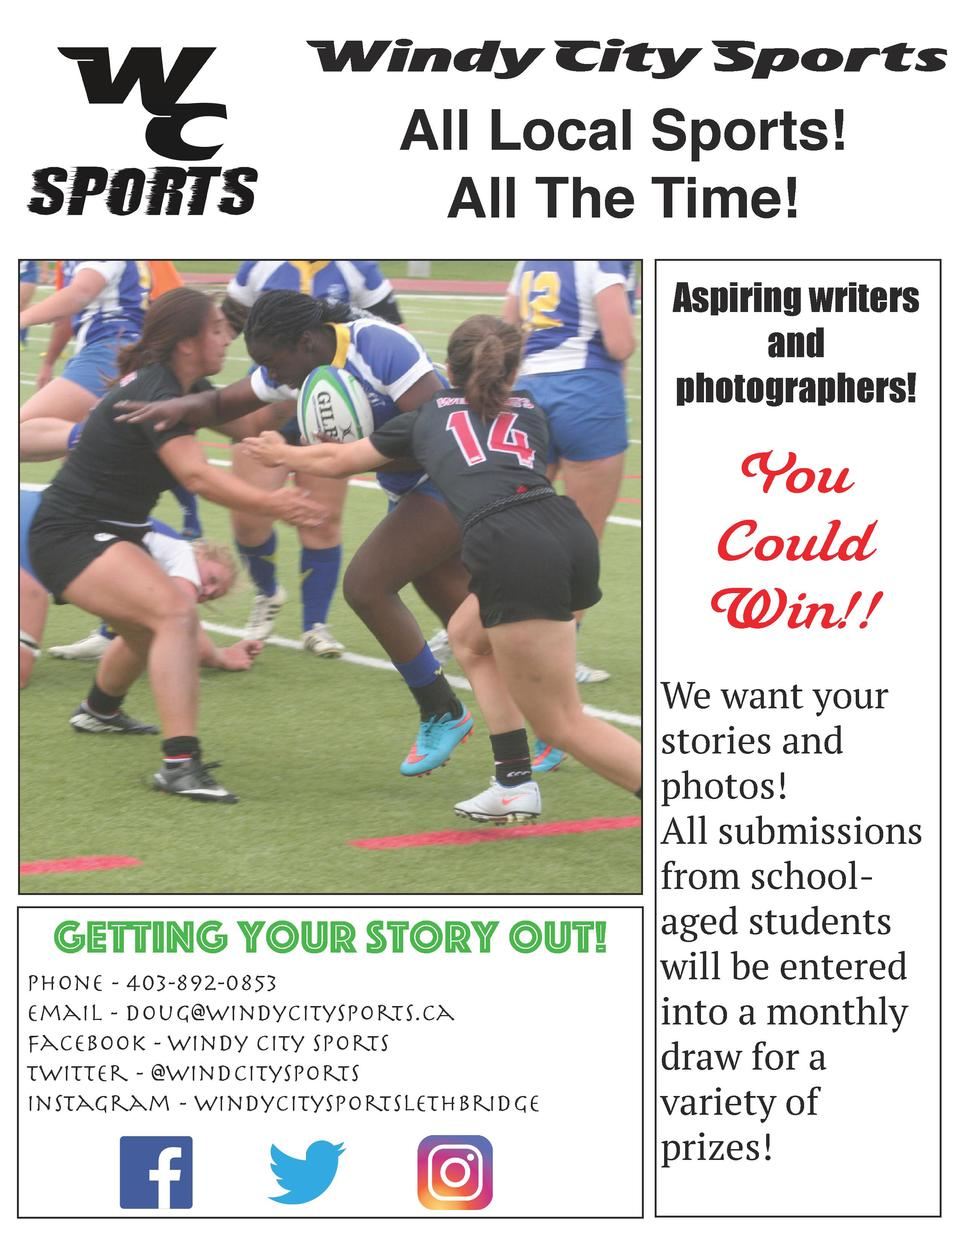 Windy City Sports  All Local Sports  All The Time  Aspiring writers and photographers   You Could Win    Getting your stor...